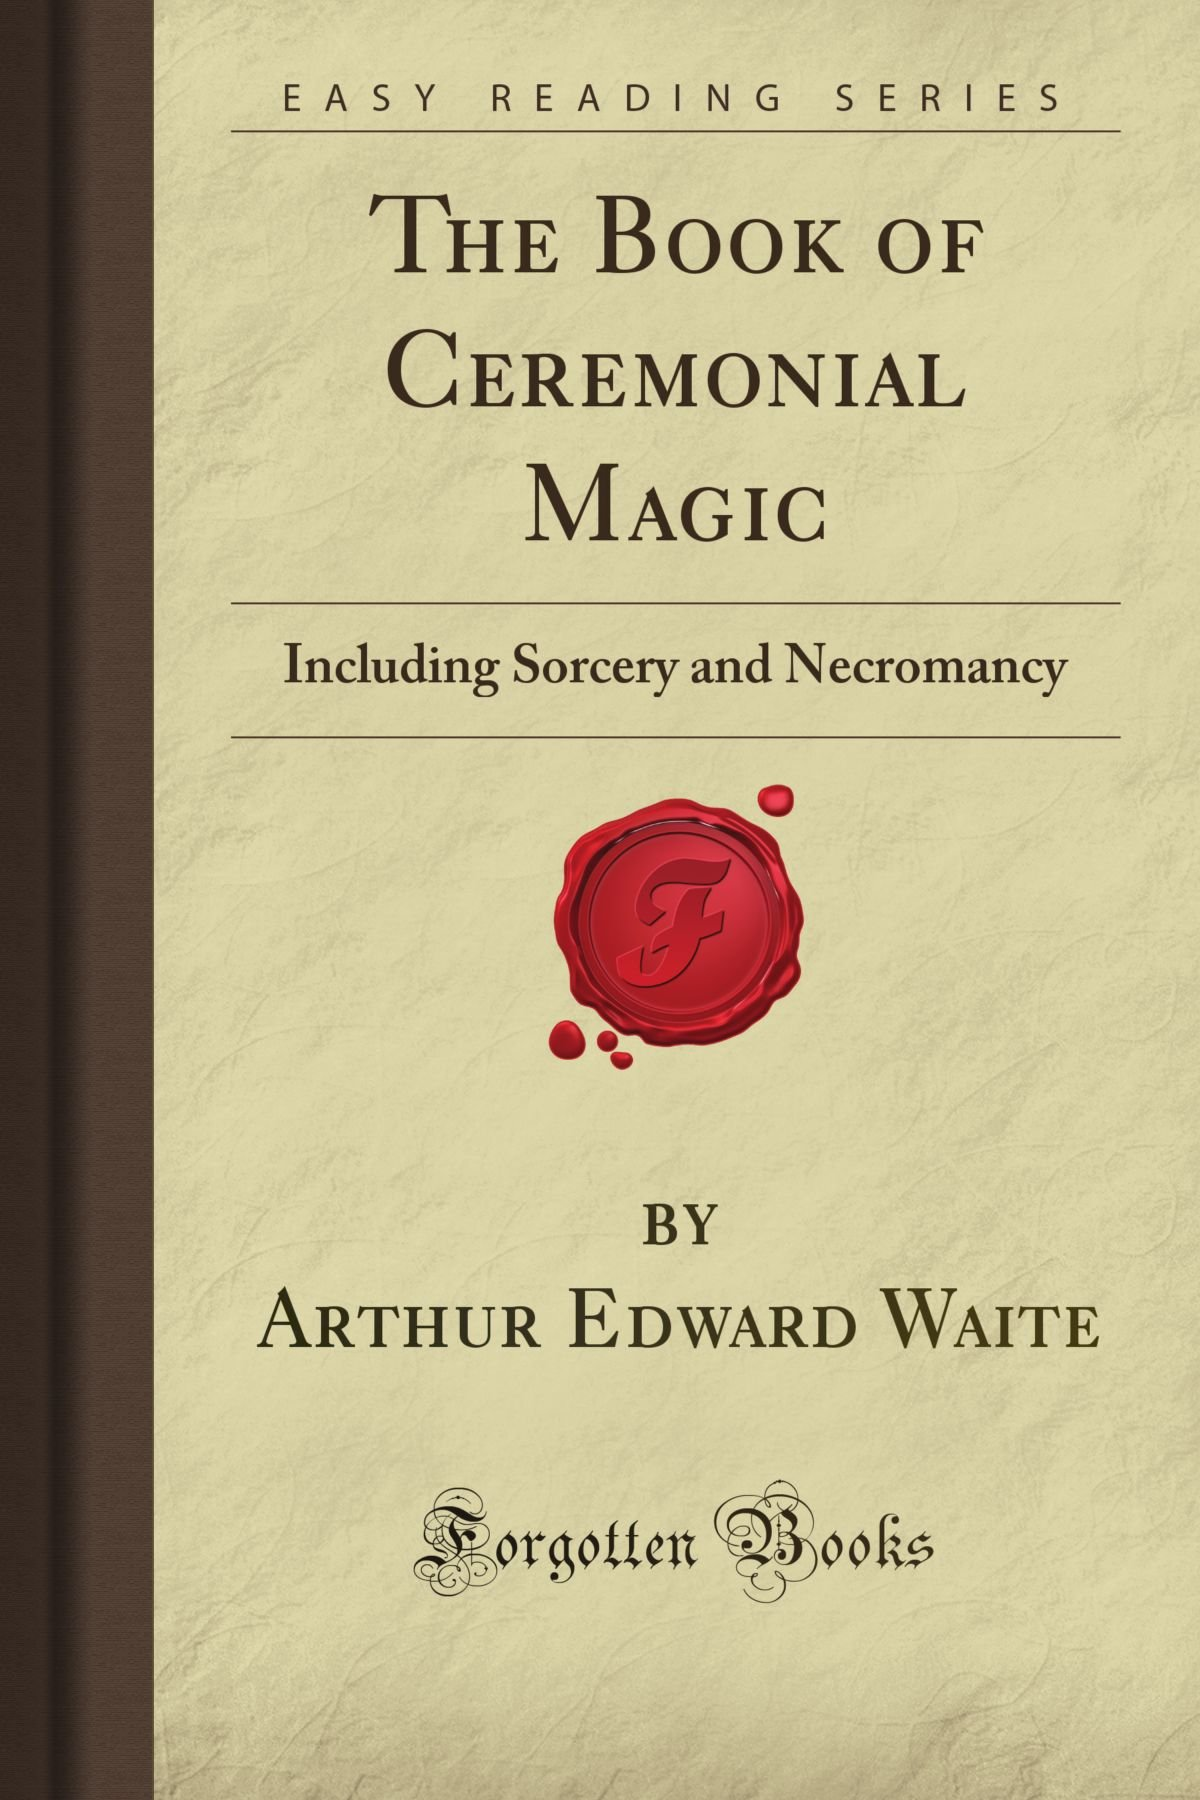 The Book of Ceremonial Magic: Including Sorcery and Necromancy (Forgotten Books) ebook